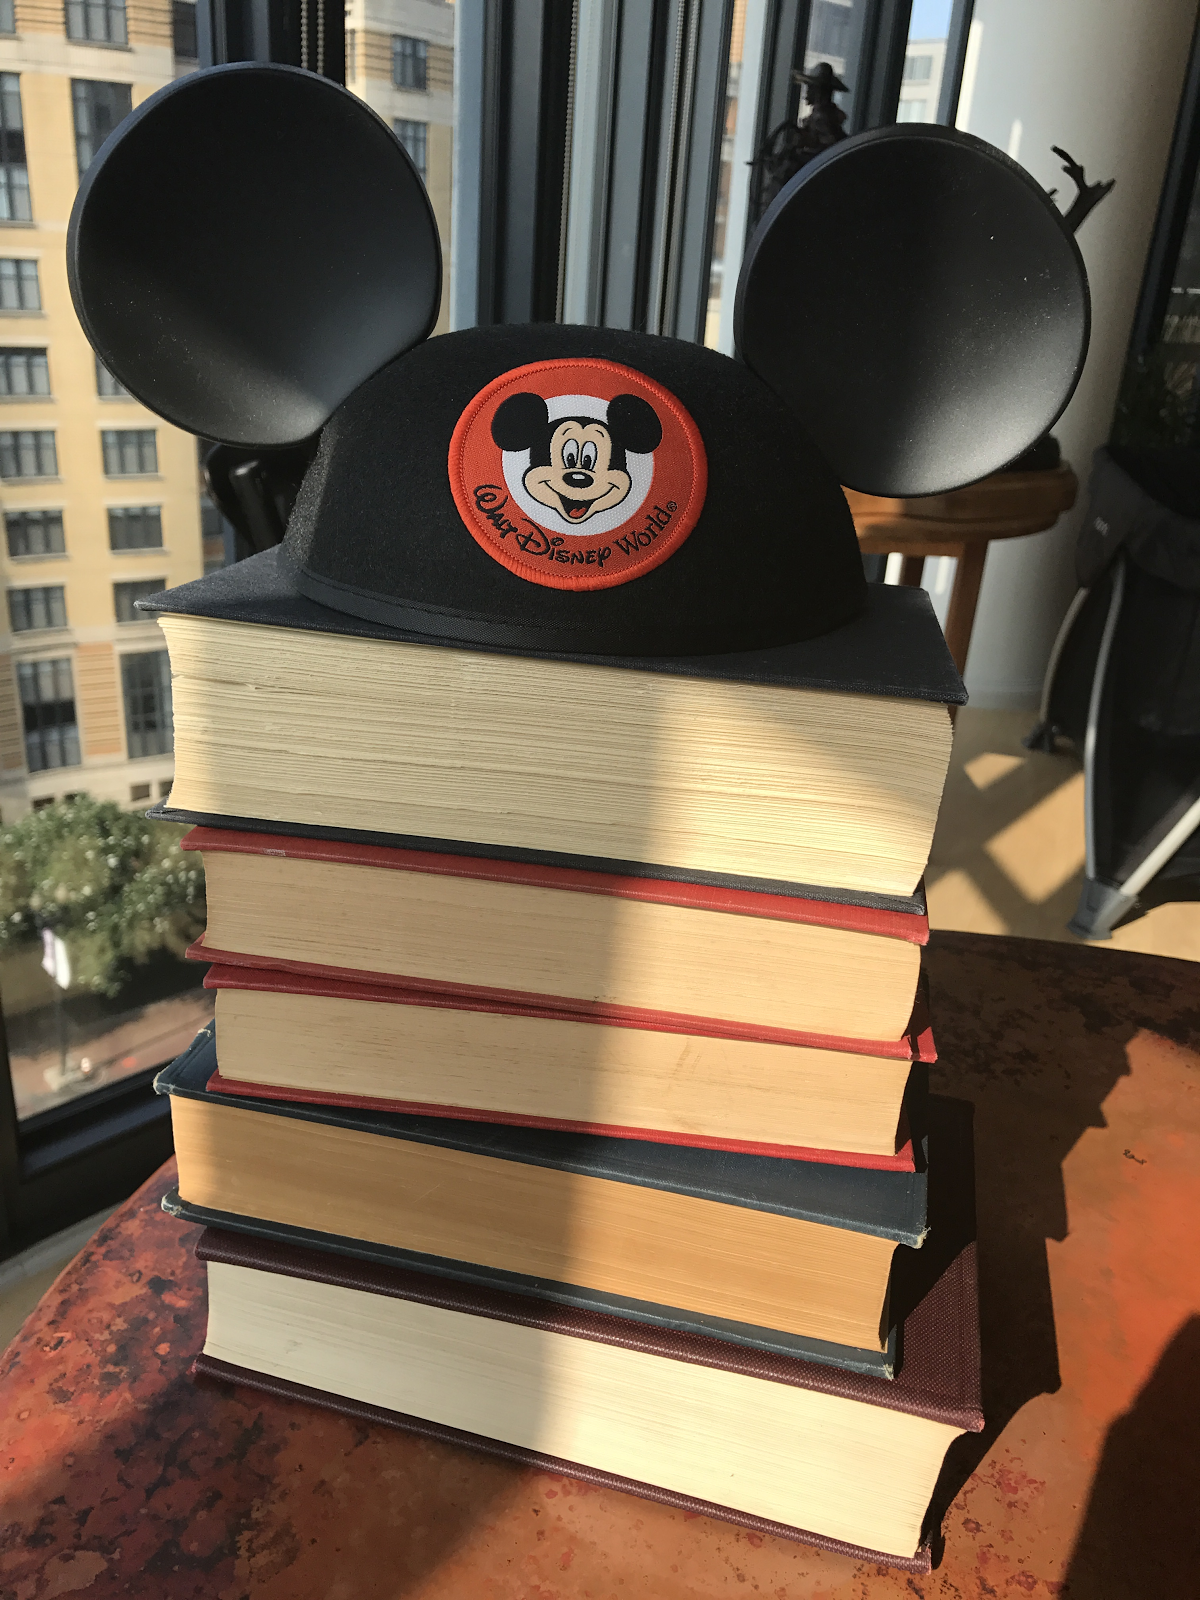 Gift from Gene Ludwig - Compliance isn't Mickey Mouse